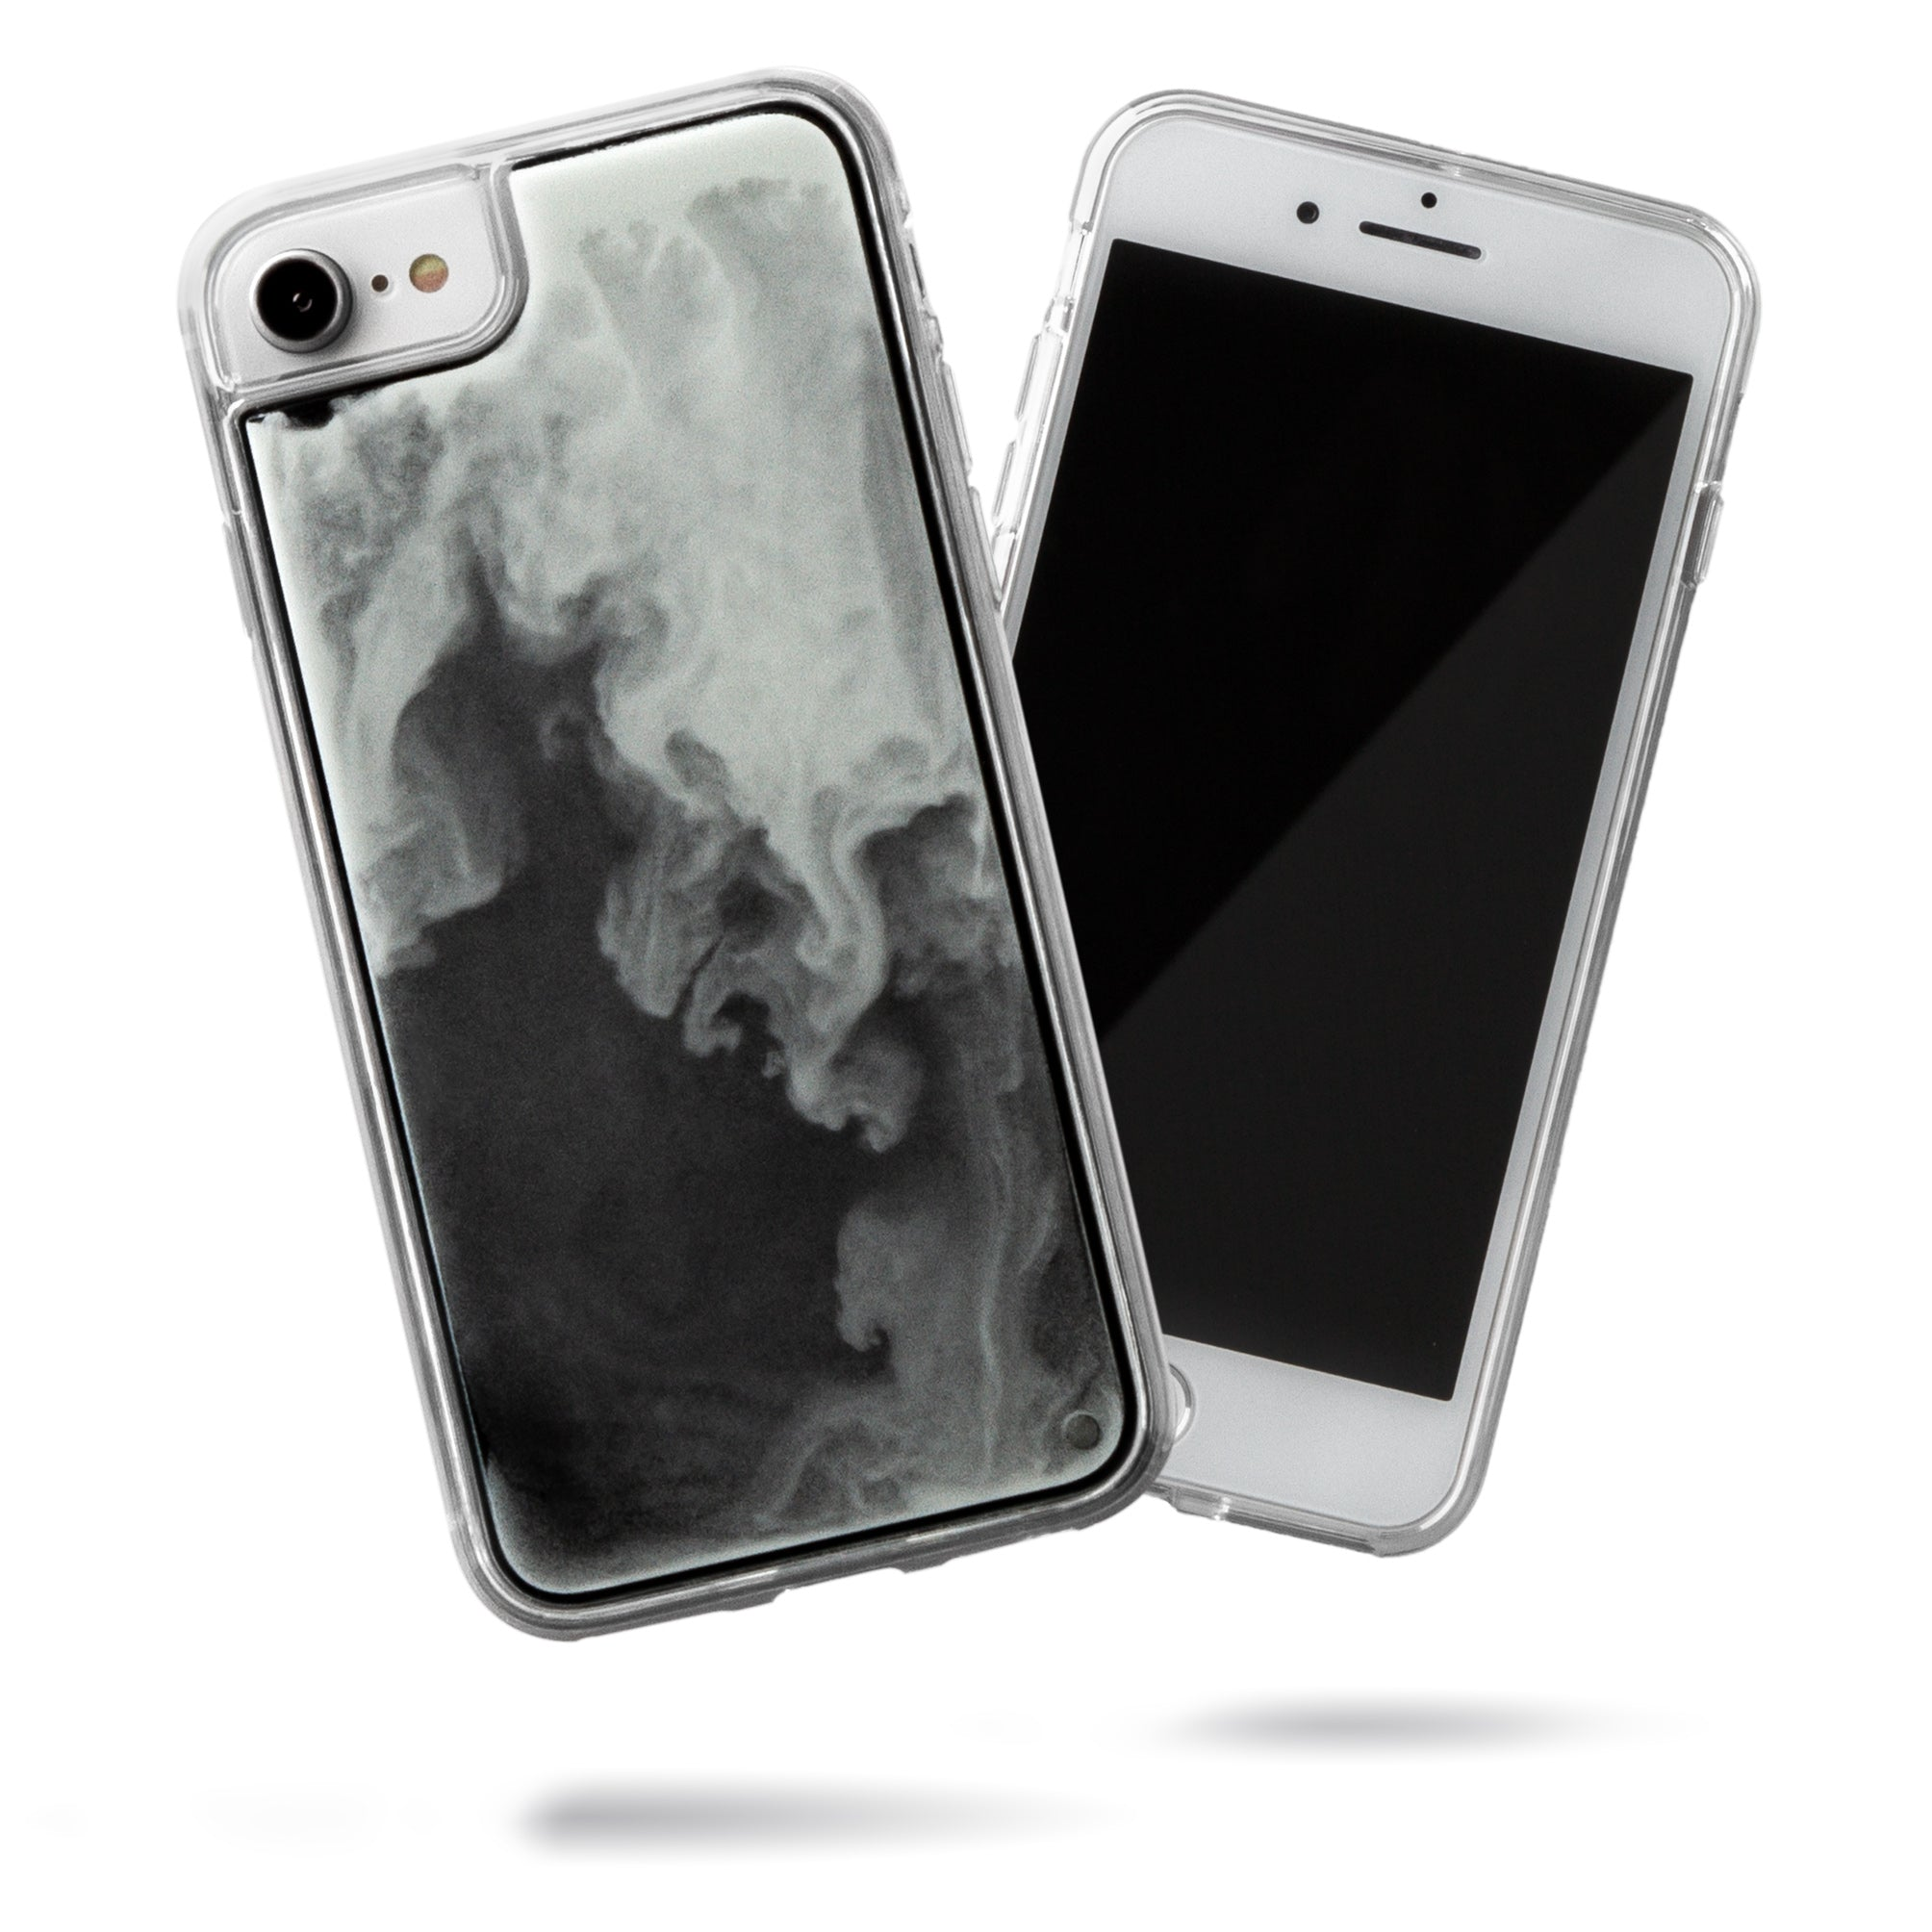 Neon Sand iPhone SE/8/7 Case - Hi Contrast Black n White